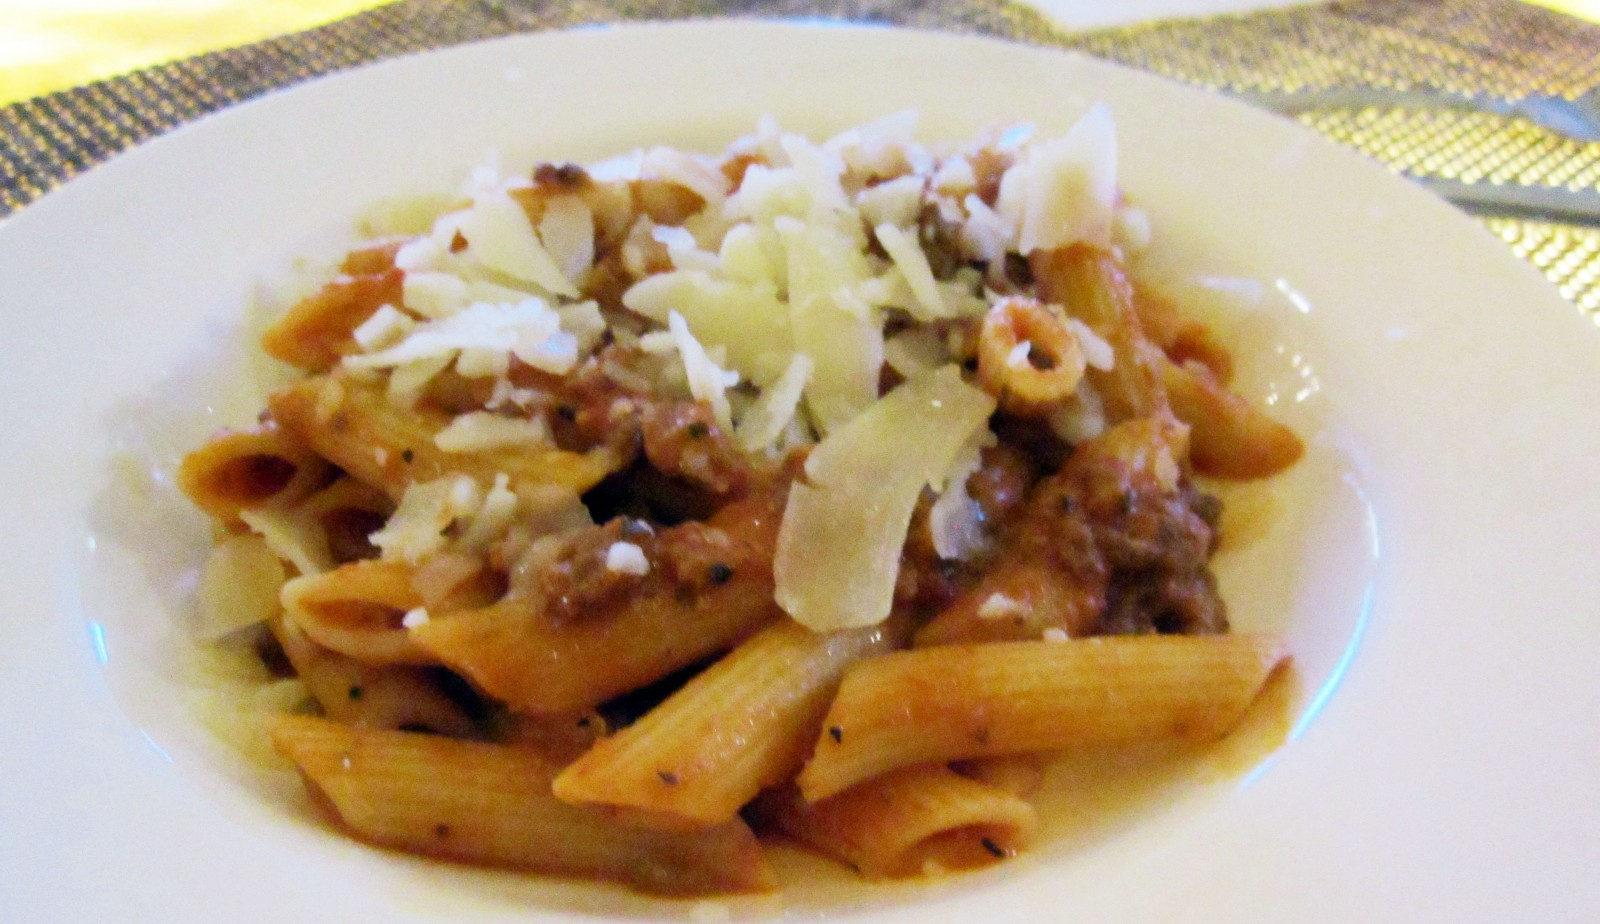 Penne Pasta with Meat Sauce from the special Tuesday menu.